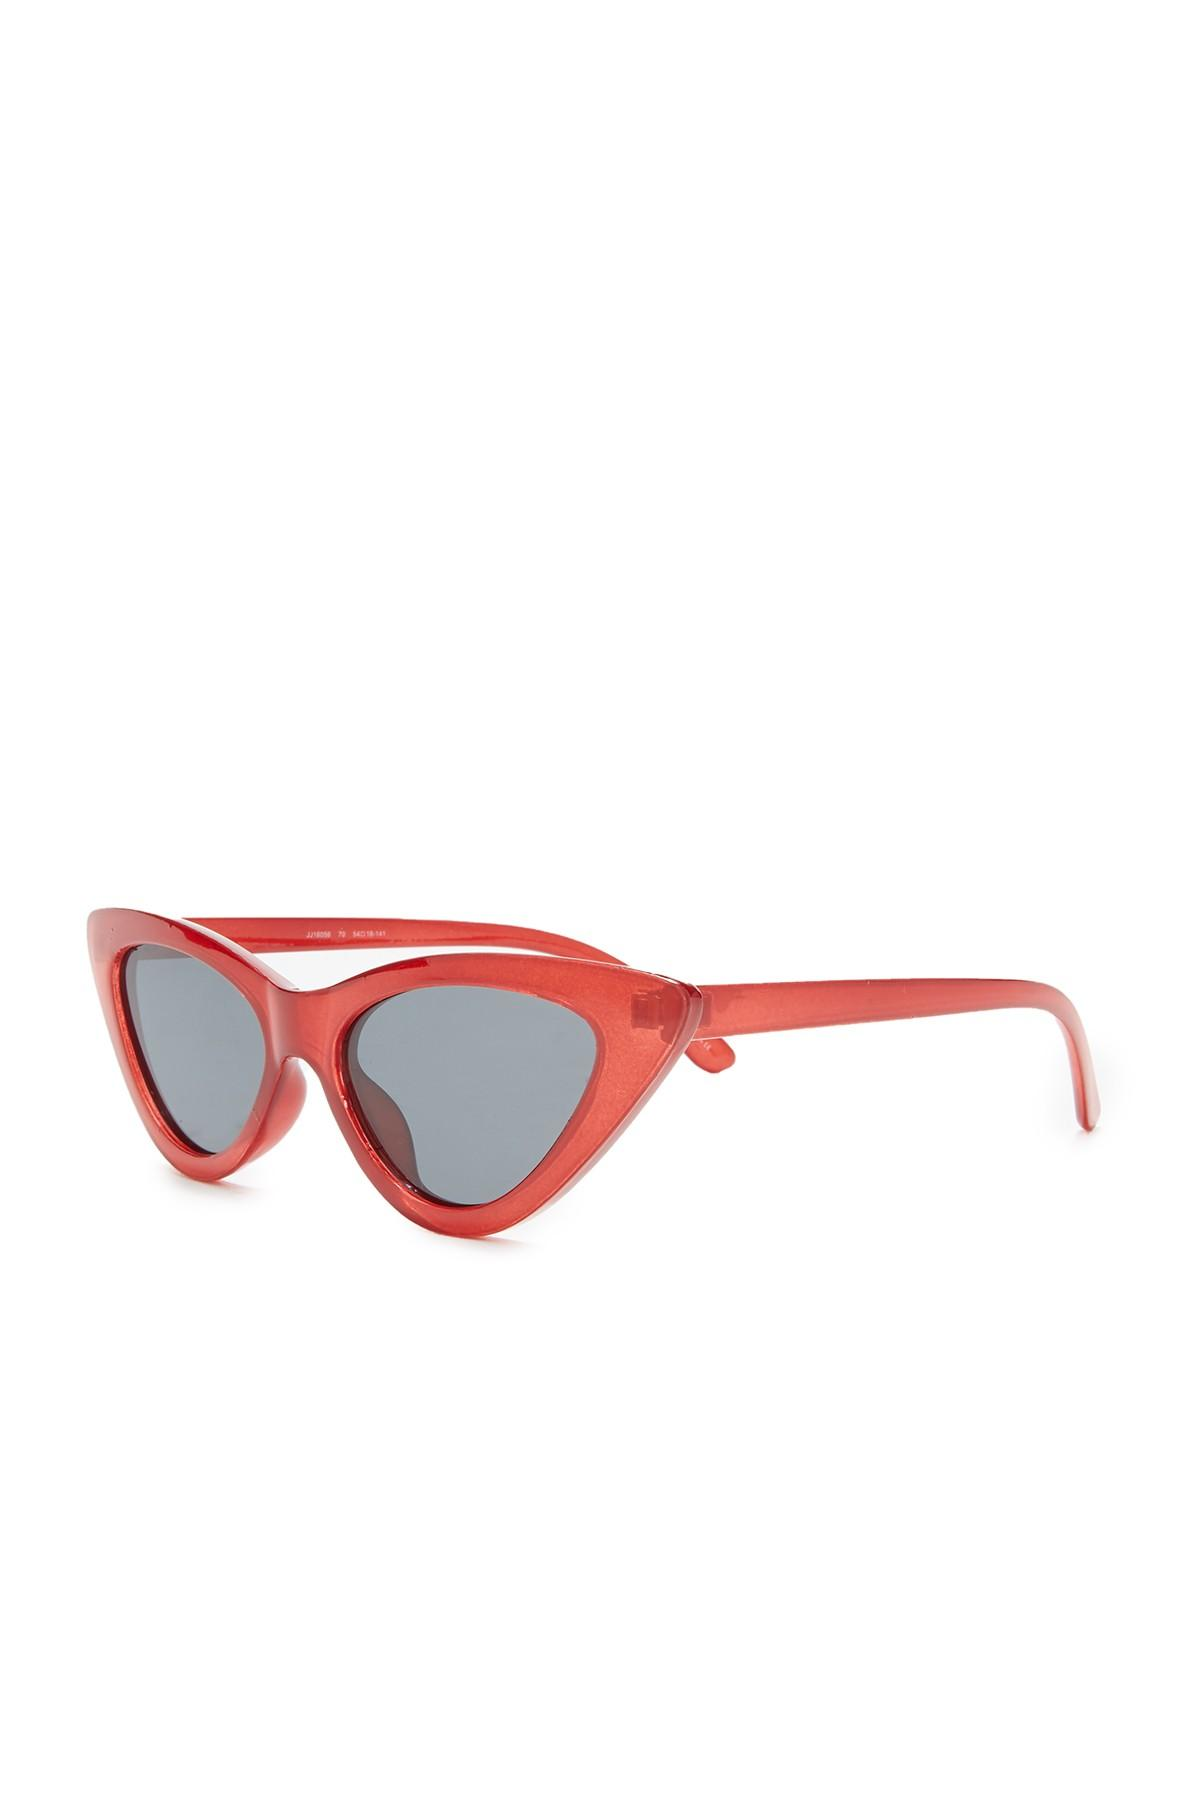 4a84bcaa86 Joe s Jeans - Red Polarized 53mm Narrow Cat Eye Sunglasses - Lyst. View  fullscreen